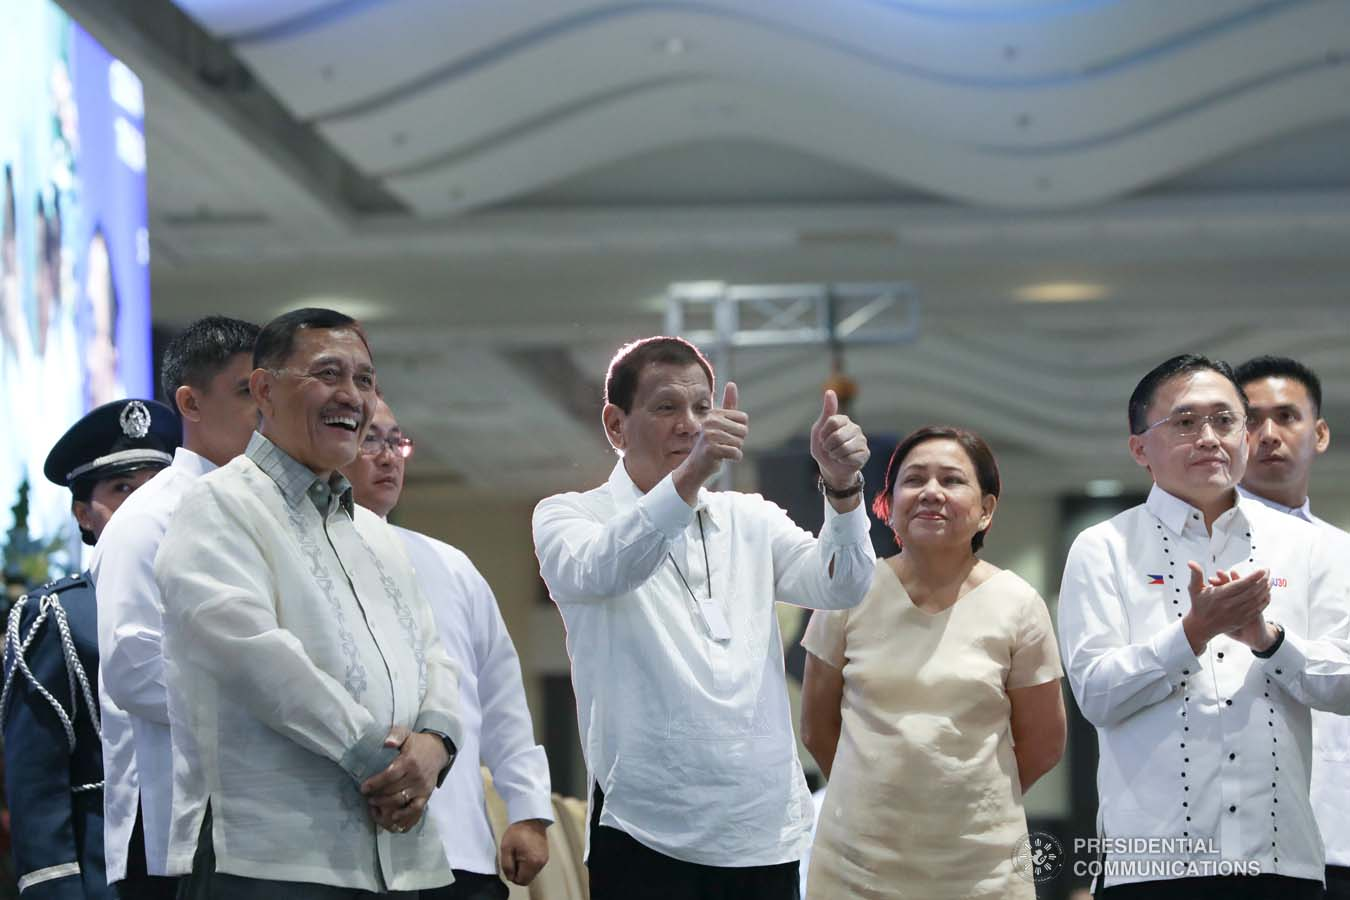 President Rodrigo Roa Duterte gives a thumbs up gesture to the guests during the celebration of the 120-year presence of the Baptist Churches in the Philippines at the SMX Convention Center in Pasay City on January 16, 2020. TOTO LOZANO/PRESIDENTIAL PHOTO